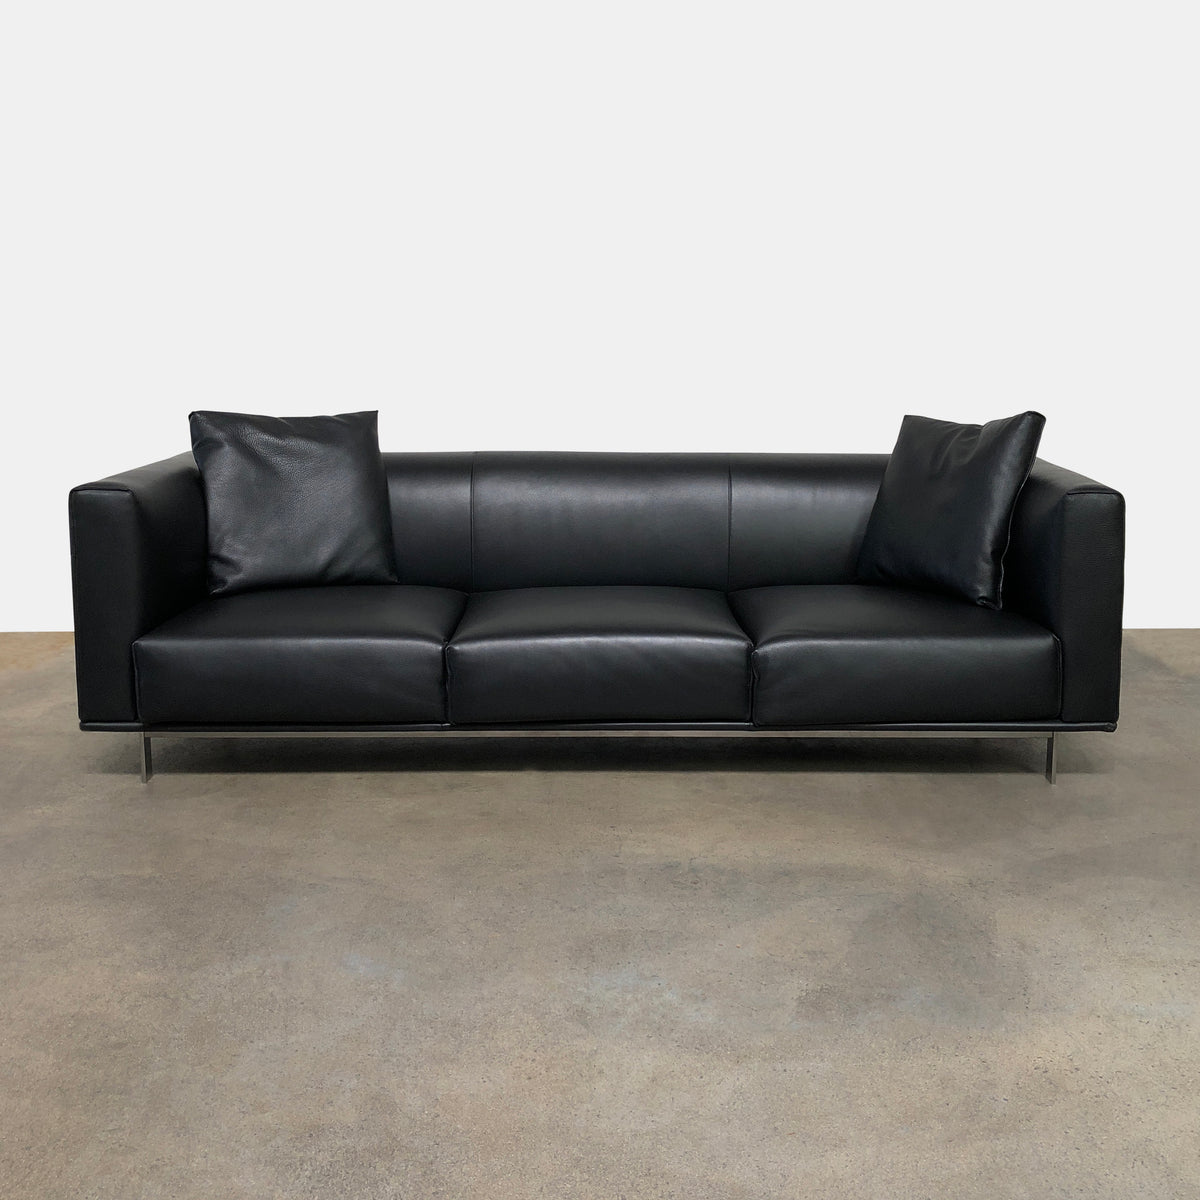 DWR Black Leather Bilsby Sofa by Matthew Hilton | LA | Consignment